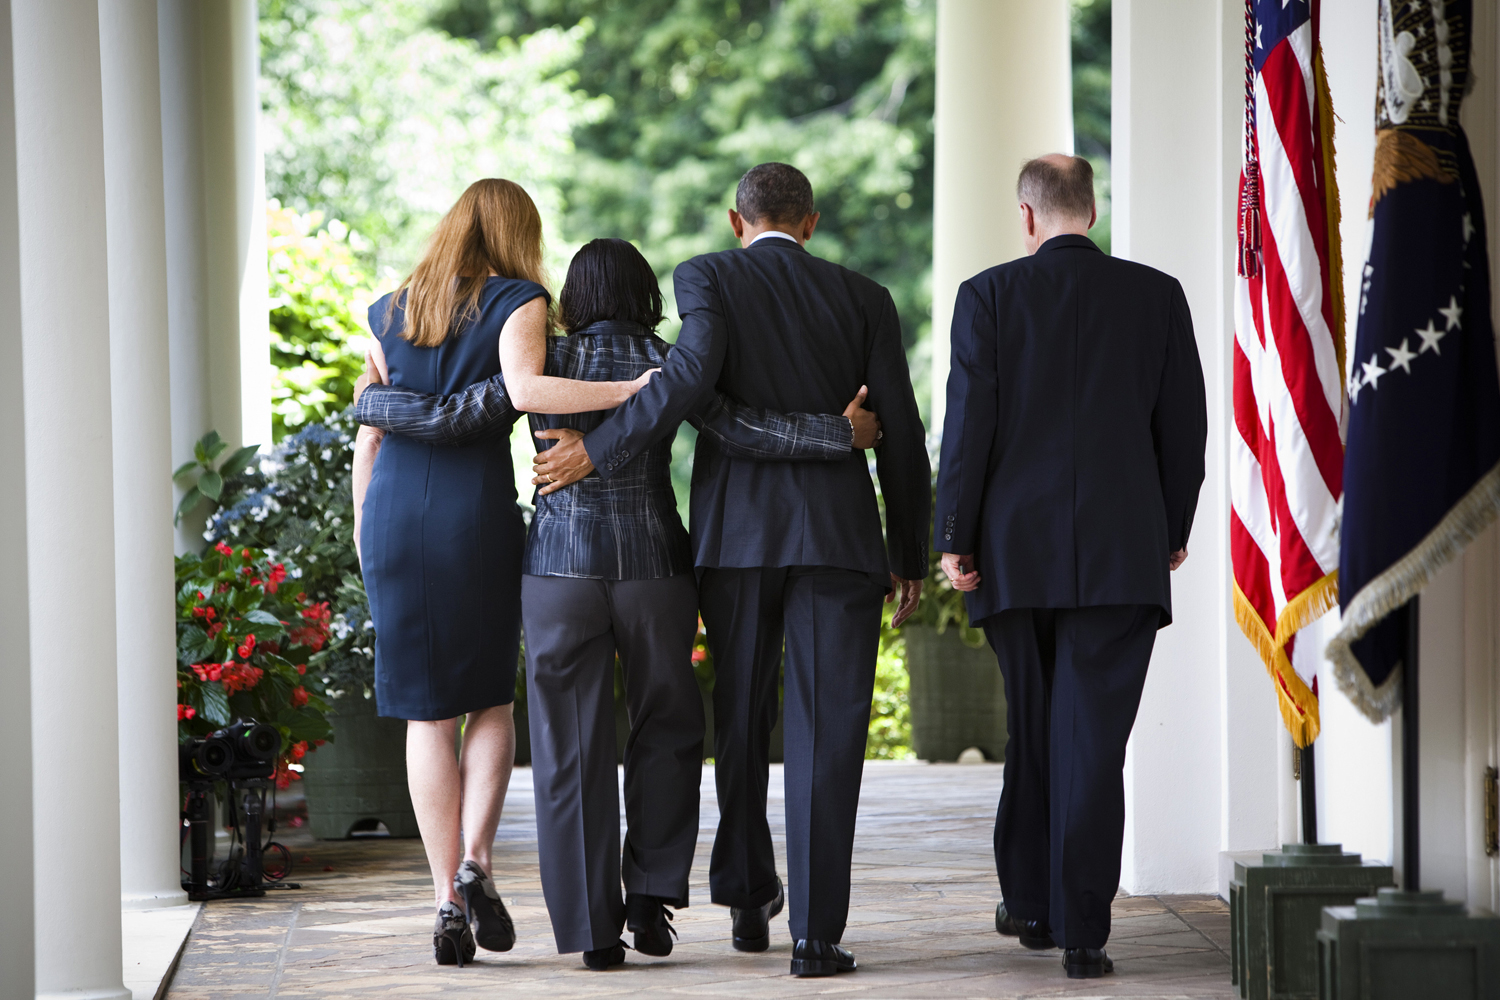 June 5, 2013. President Barack Obama with officials after an announcement in the Rose Garden of the White House that Samantha Powers would replace Susan Rice as the American ambassador to the United Nations, and that Rice would replace Tom Donilon, who is resigning, as national security adviser. From left: Powers, Rice, Obama, and Donilon.